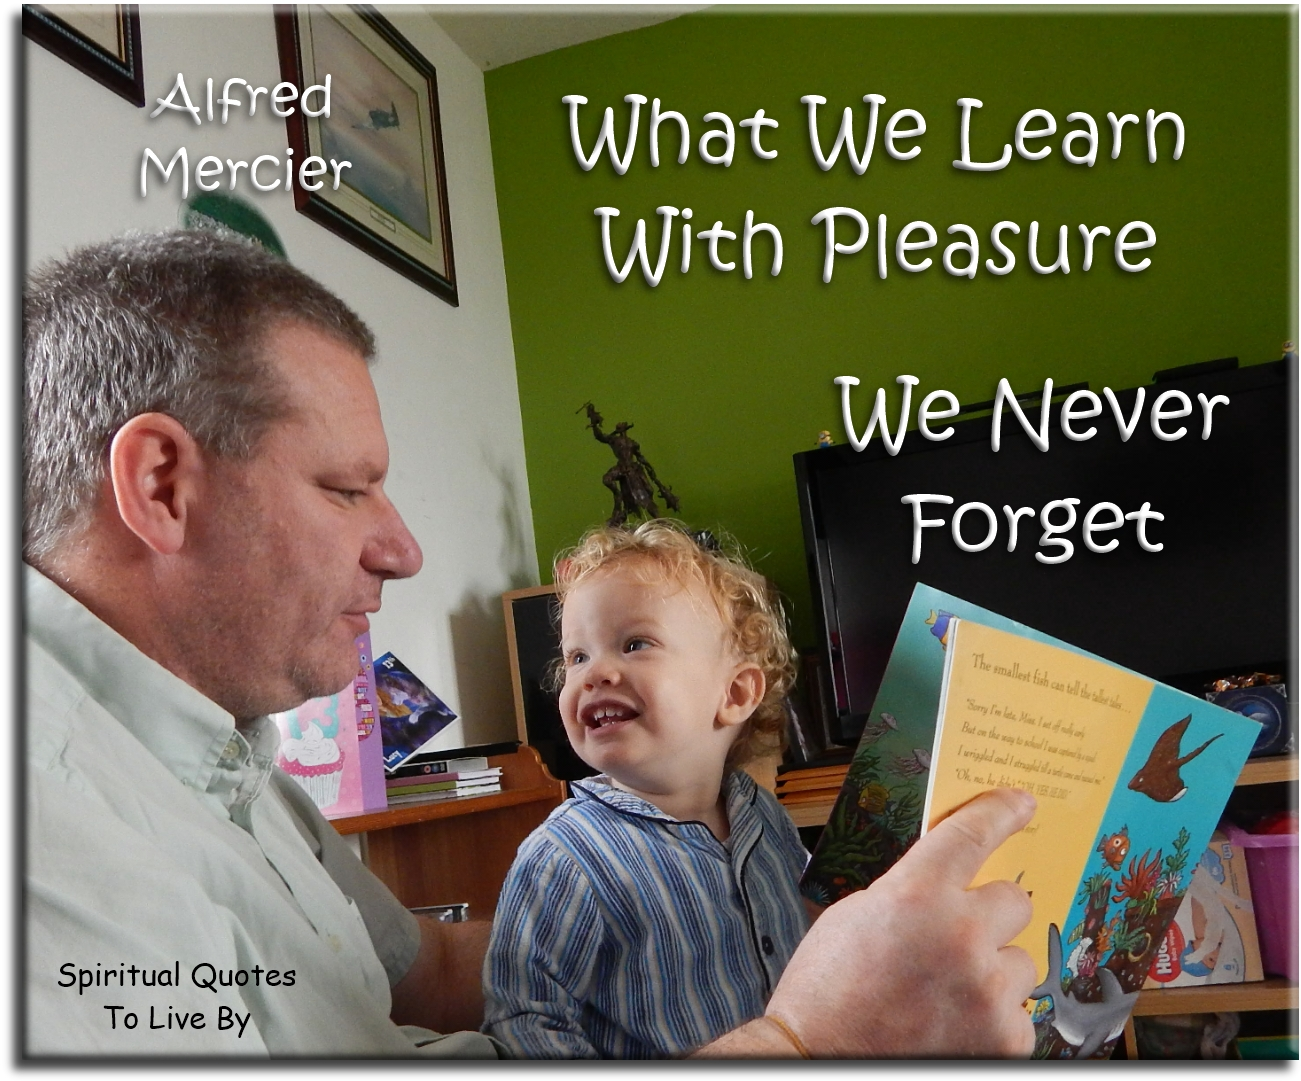 Alfred Mercier quote: What we learn with pleasure, we never forget. - Spiritual Quotes To Live By